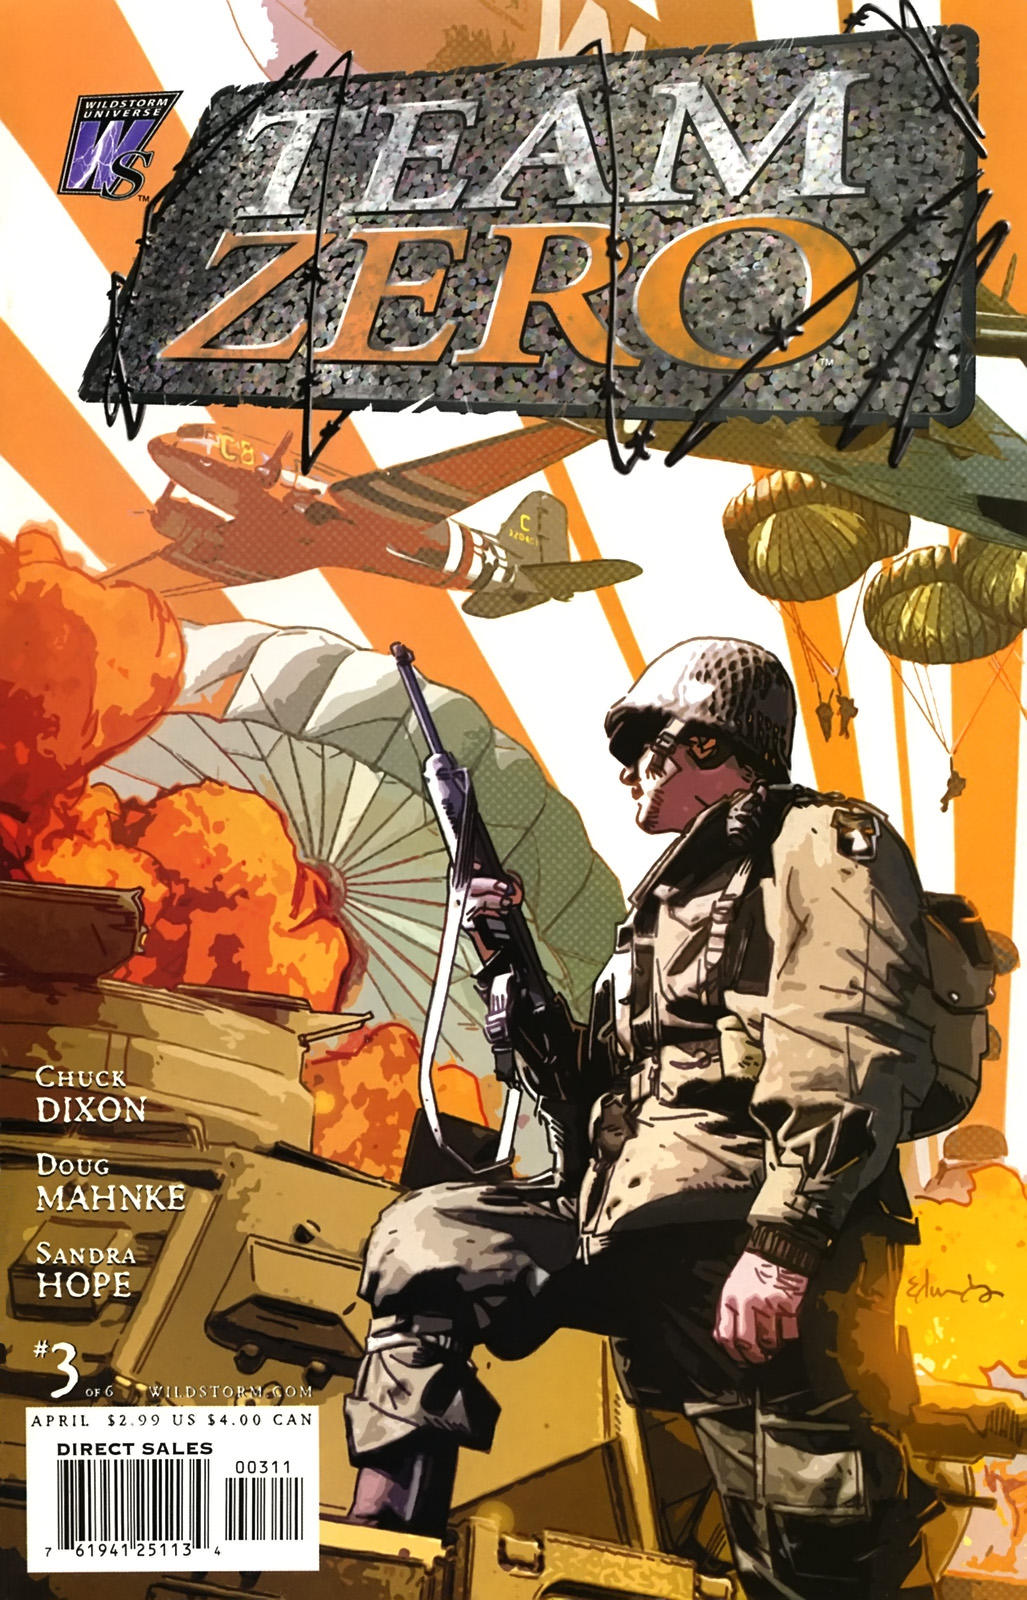 Team Zero Vol 1 3 - DC Comics Database